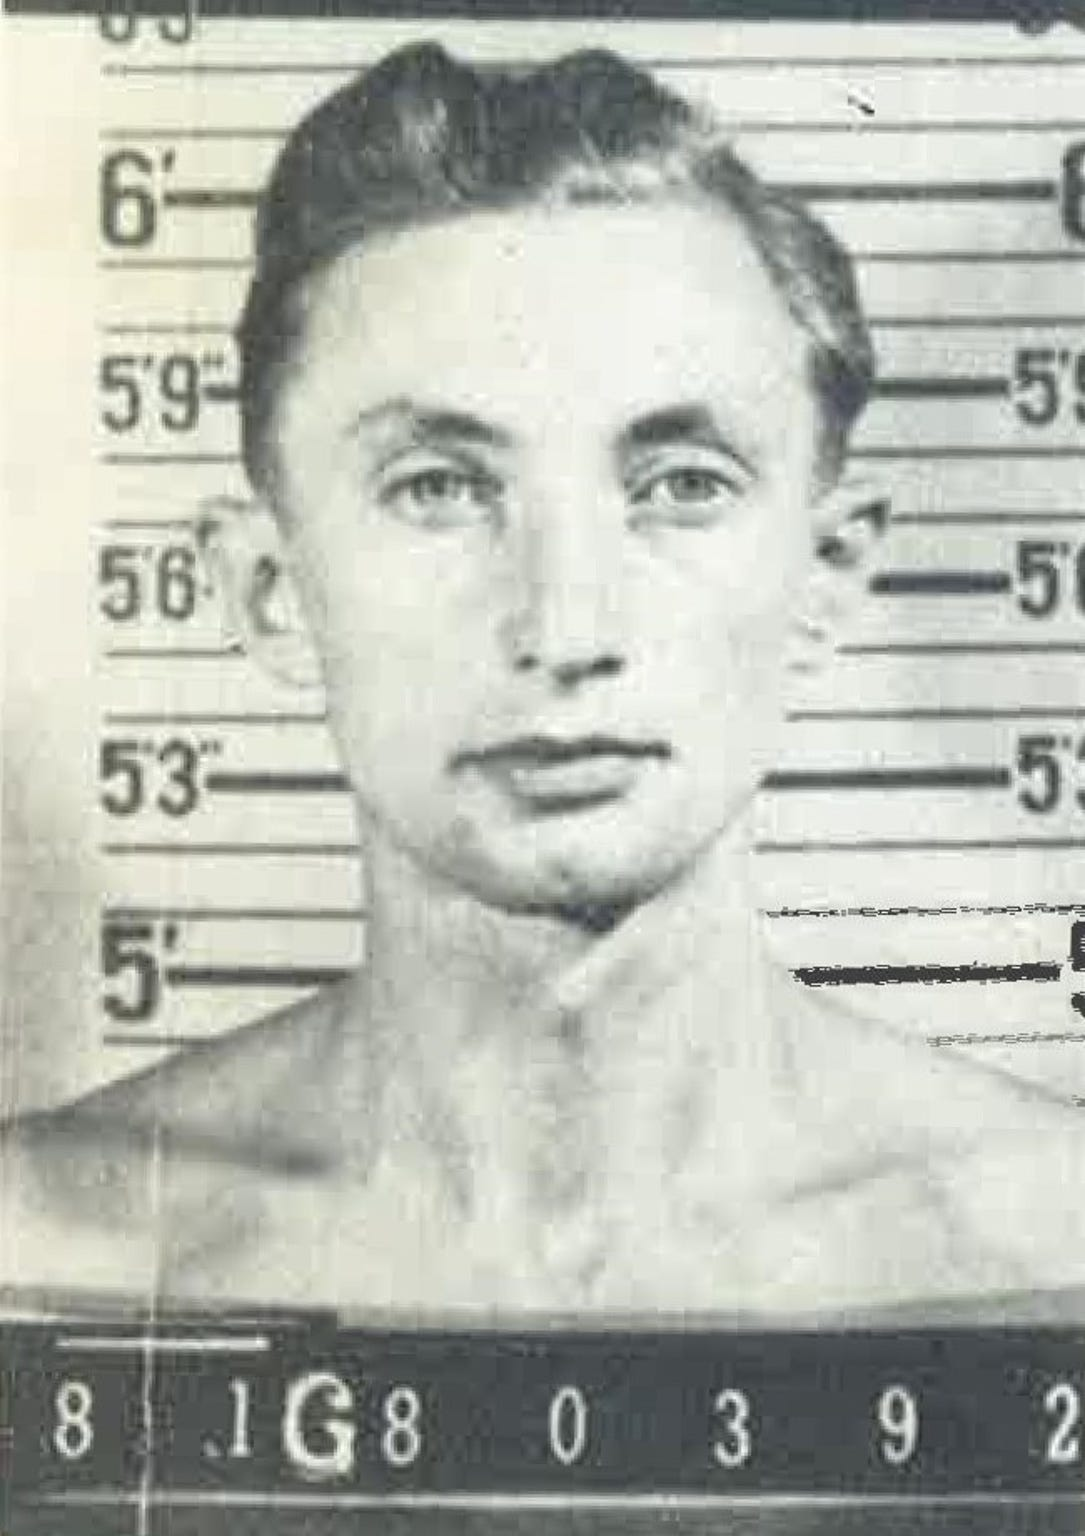 Georg Gartner as a prisoner of war in 1943. He would be sent to Deming, New Mexico, where he would escape and live as a fugitive from 1945 to 1985.